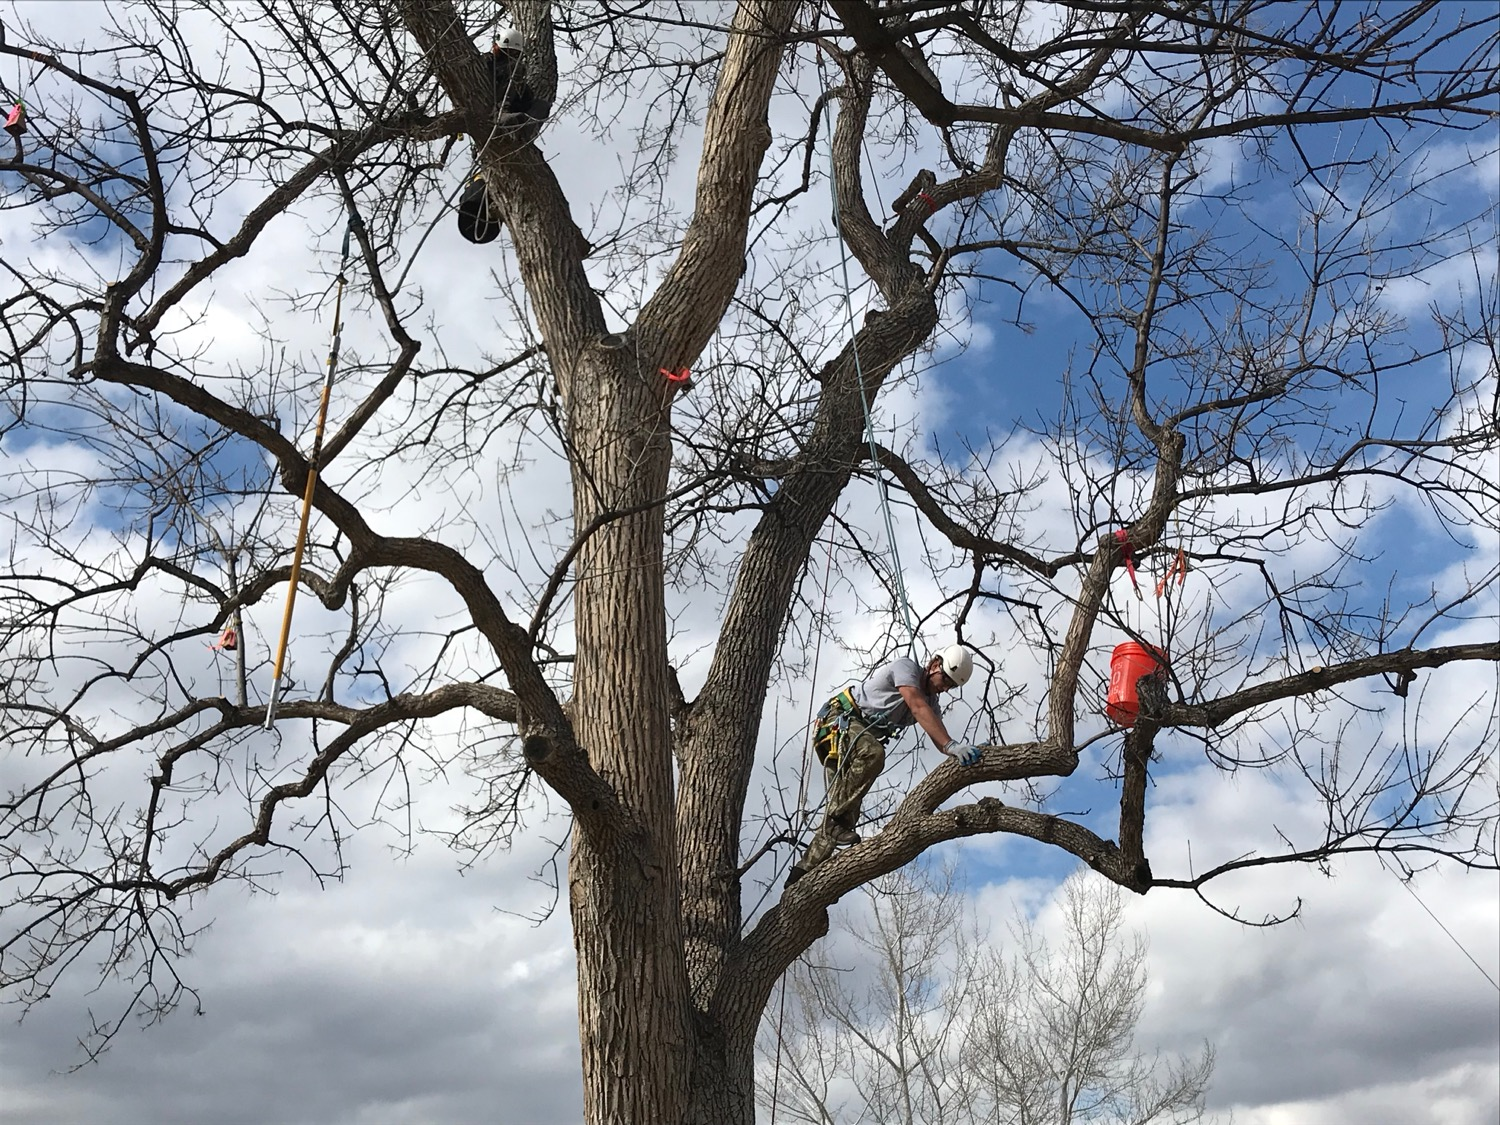 There's also arboriculture where students can show off their climbing skills.